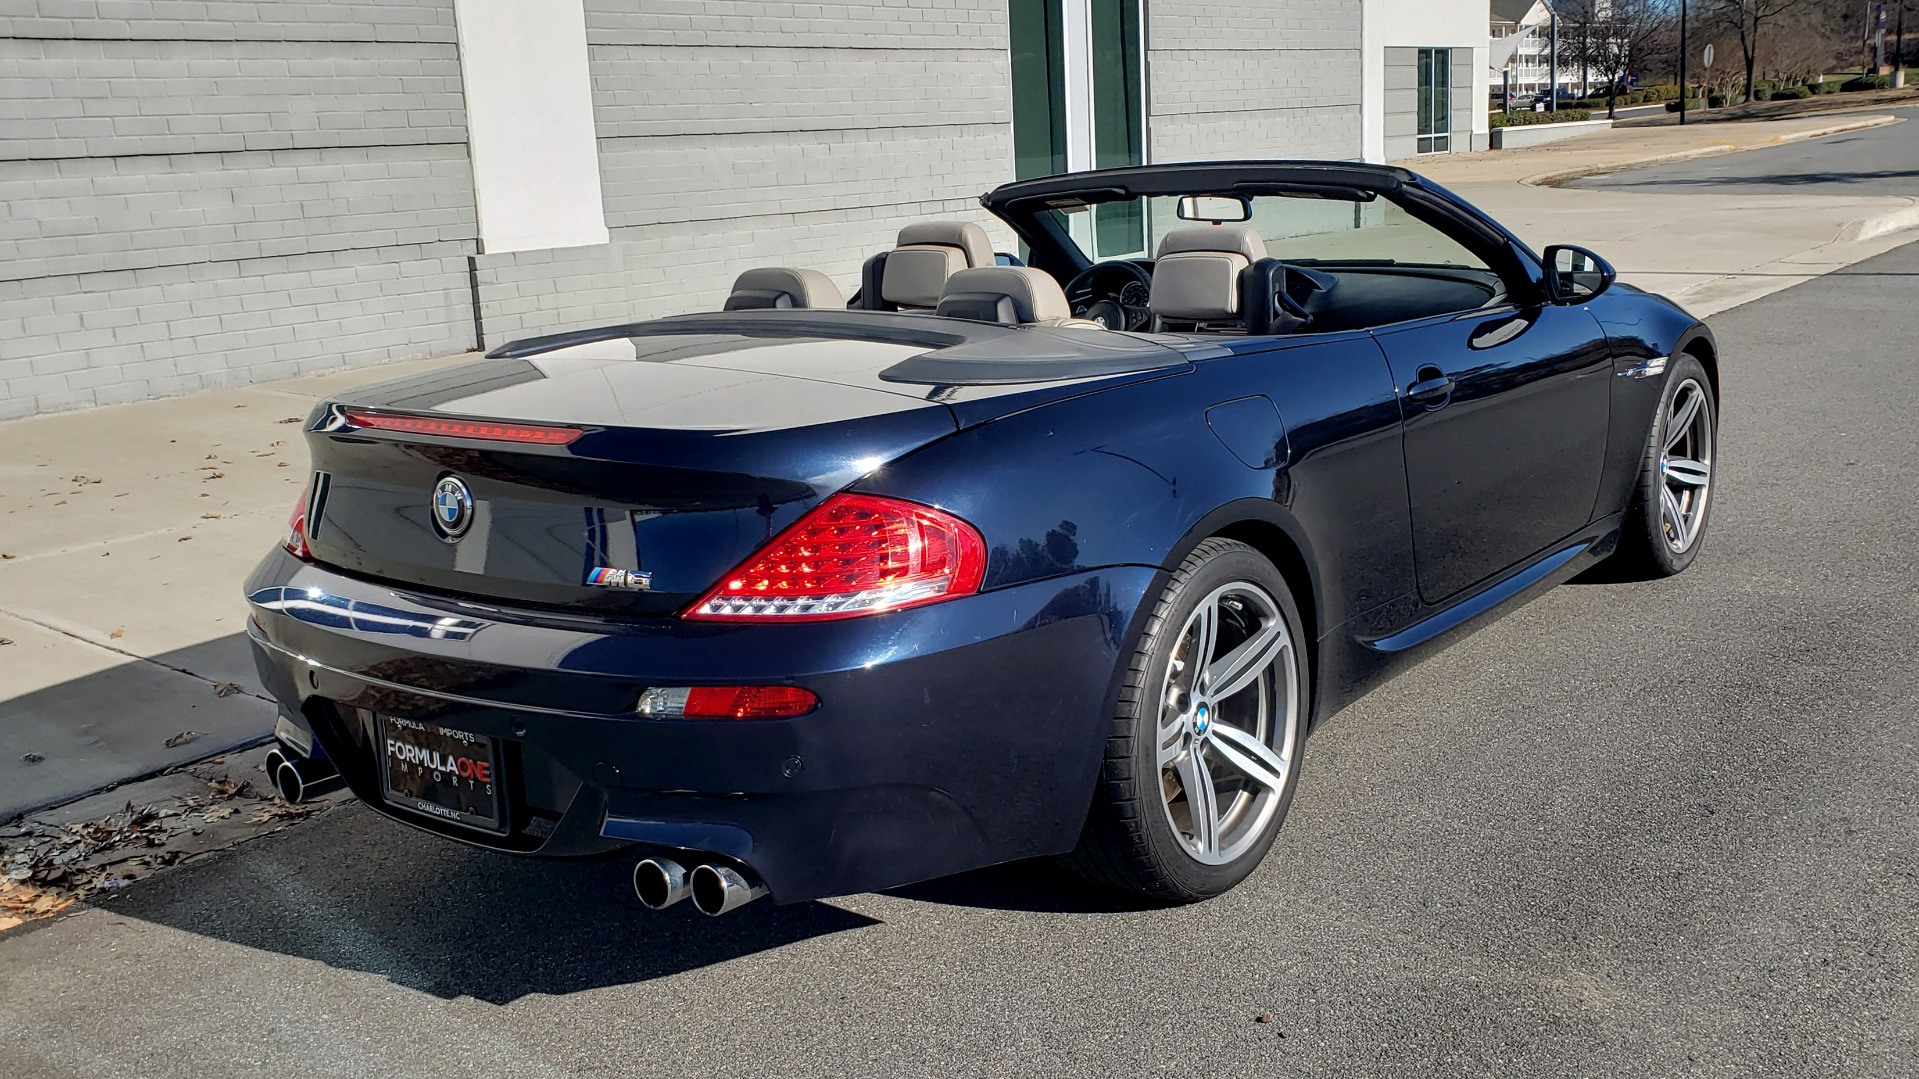 Used 2009 BMW M6 CONVERTIBLE / 5.0L V10 (500HP) / PREM SND / HUD / 19IN WHEELS for sale $24,999 at Formula Imports in Charlotte NC 28227 5